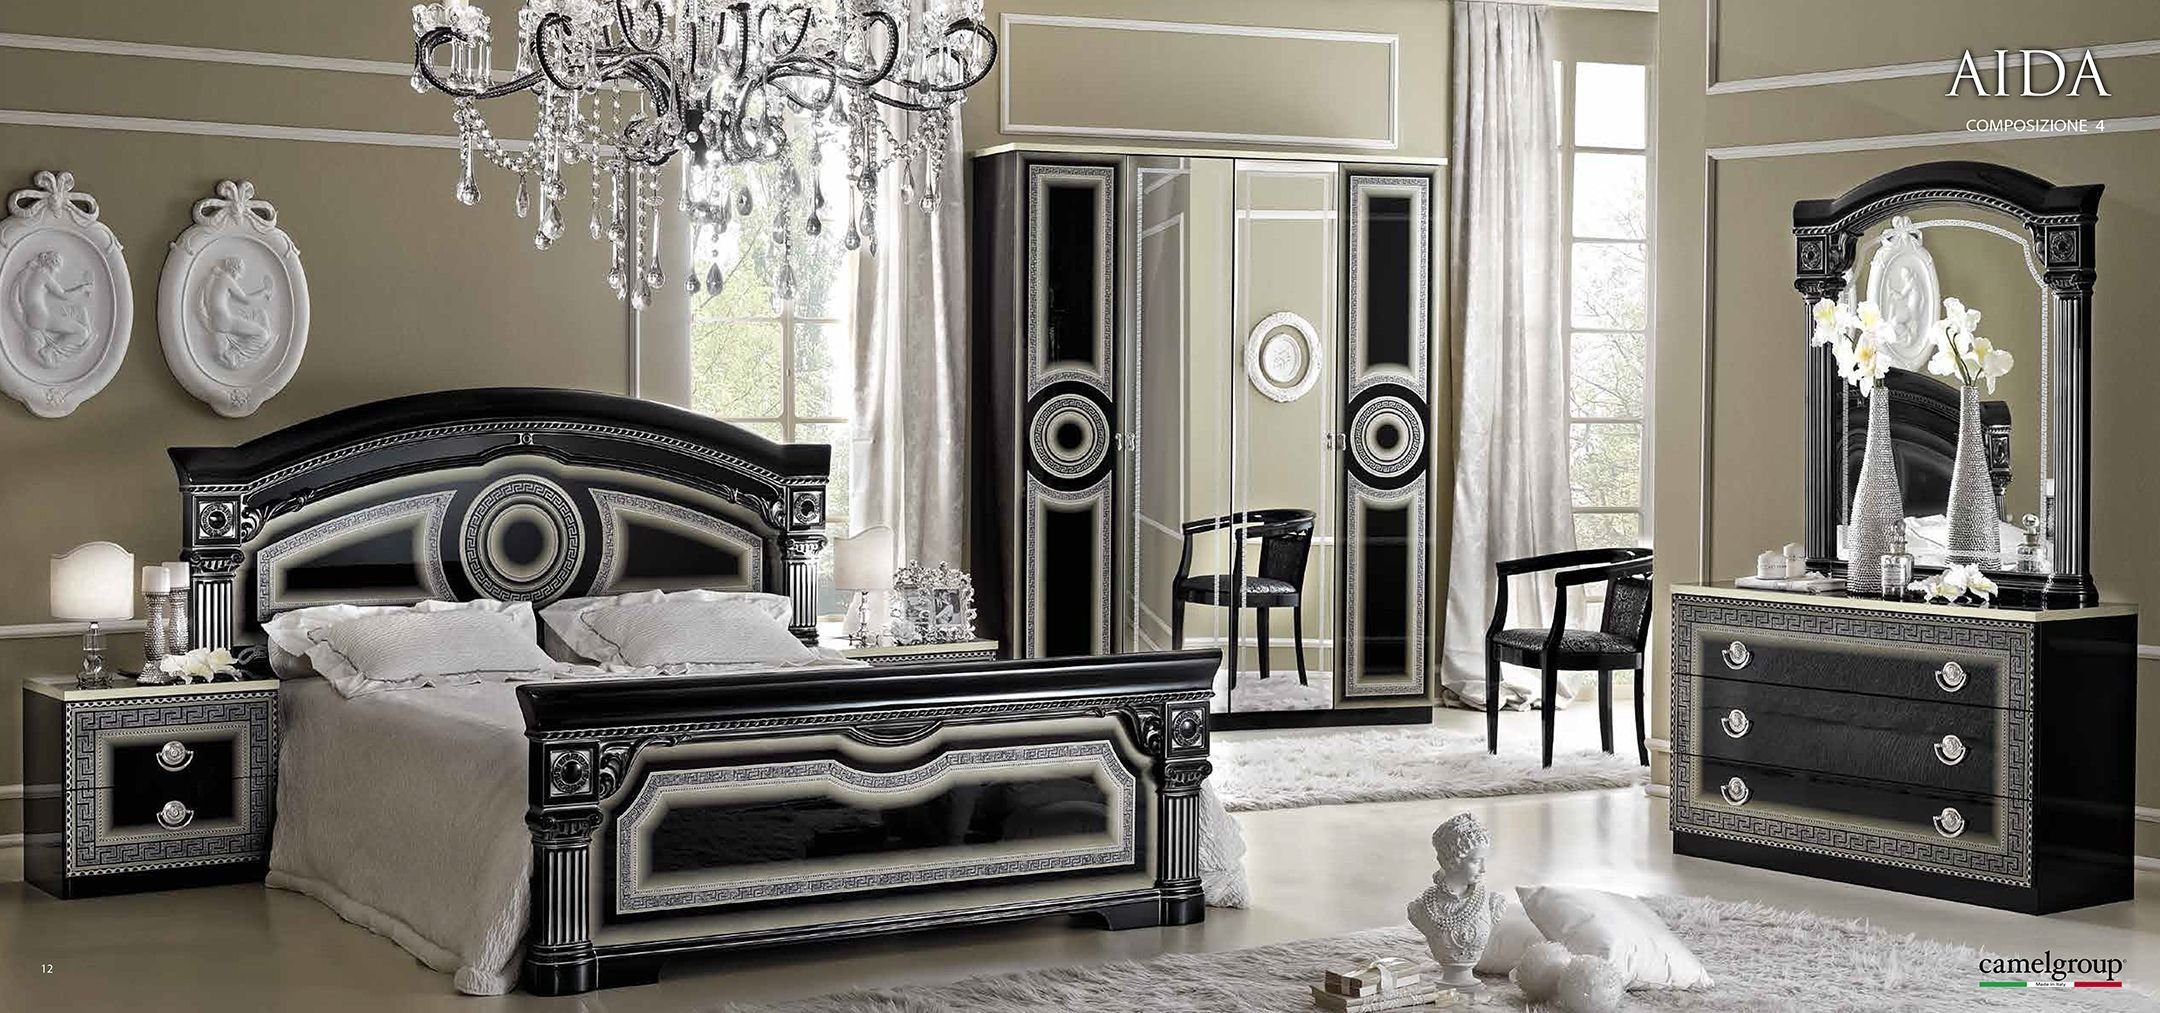 Best Versace Home Versace Design Aida Bedroom For More With Pictures